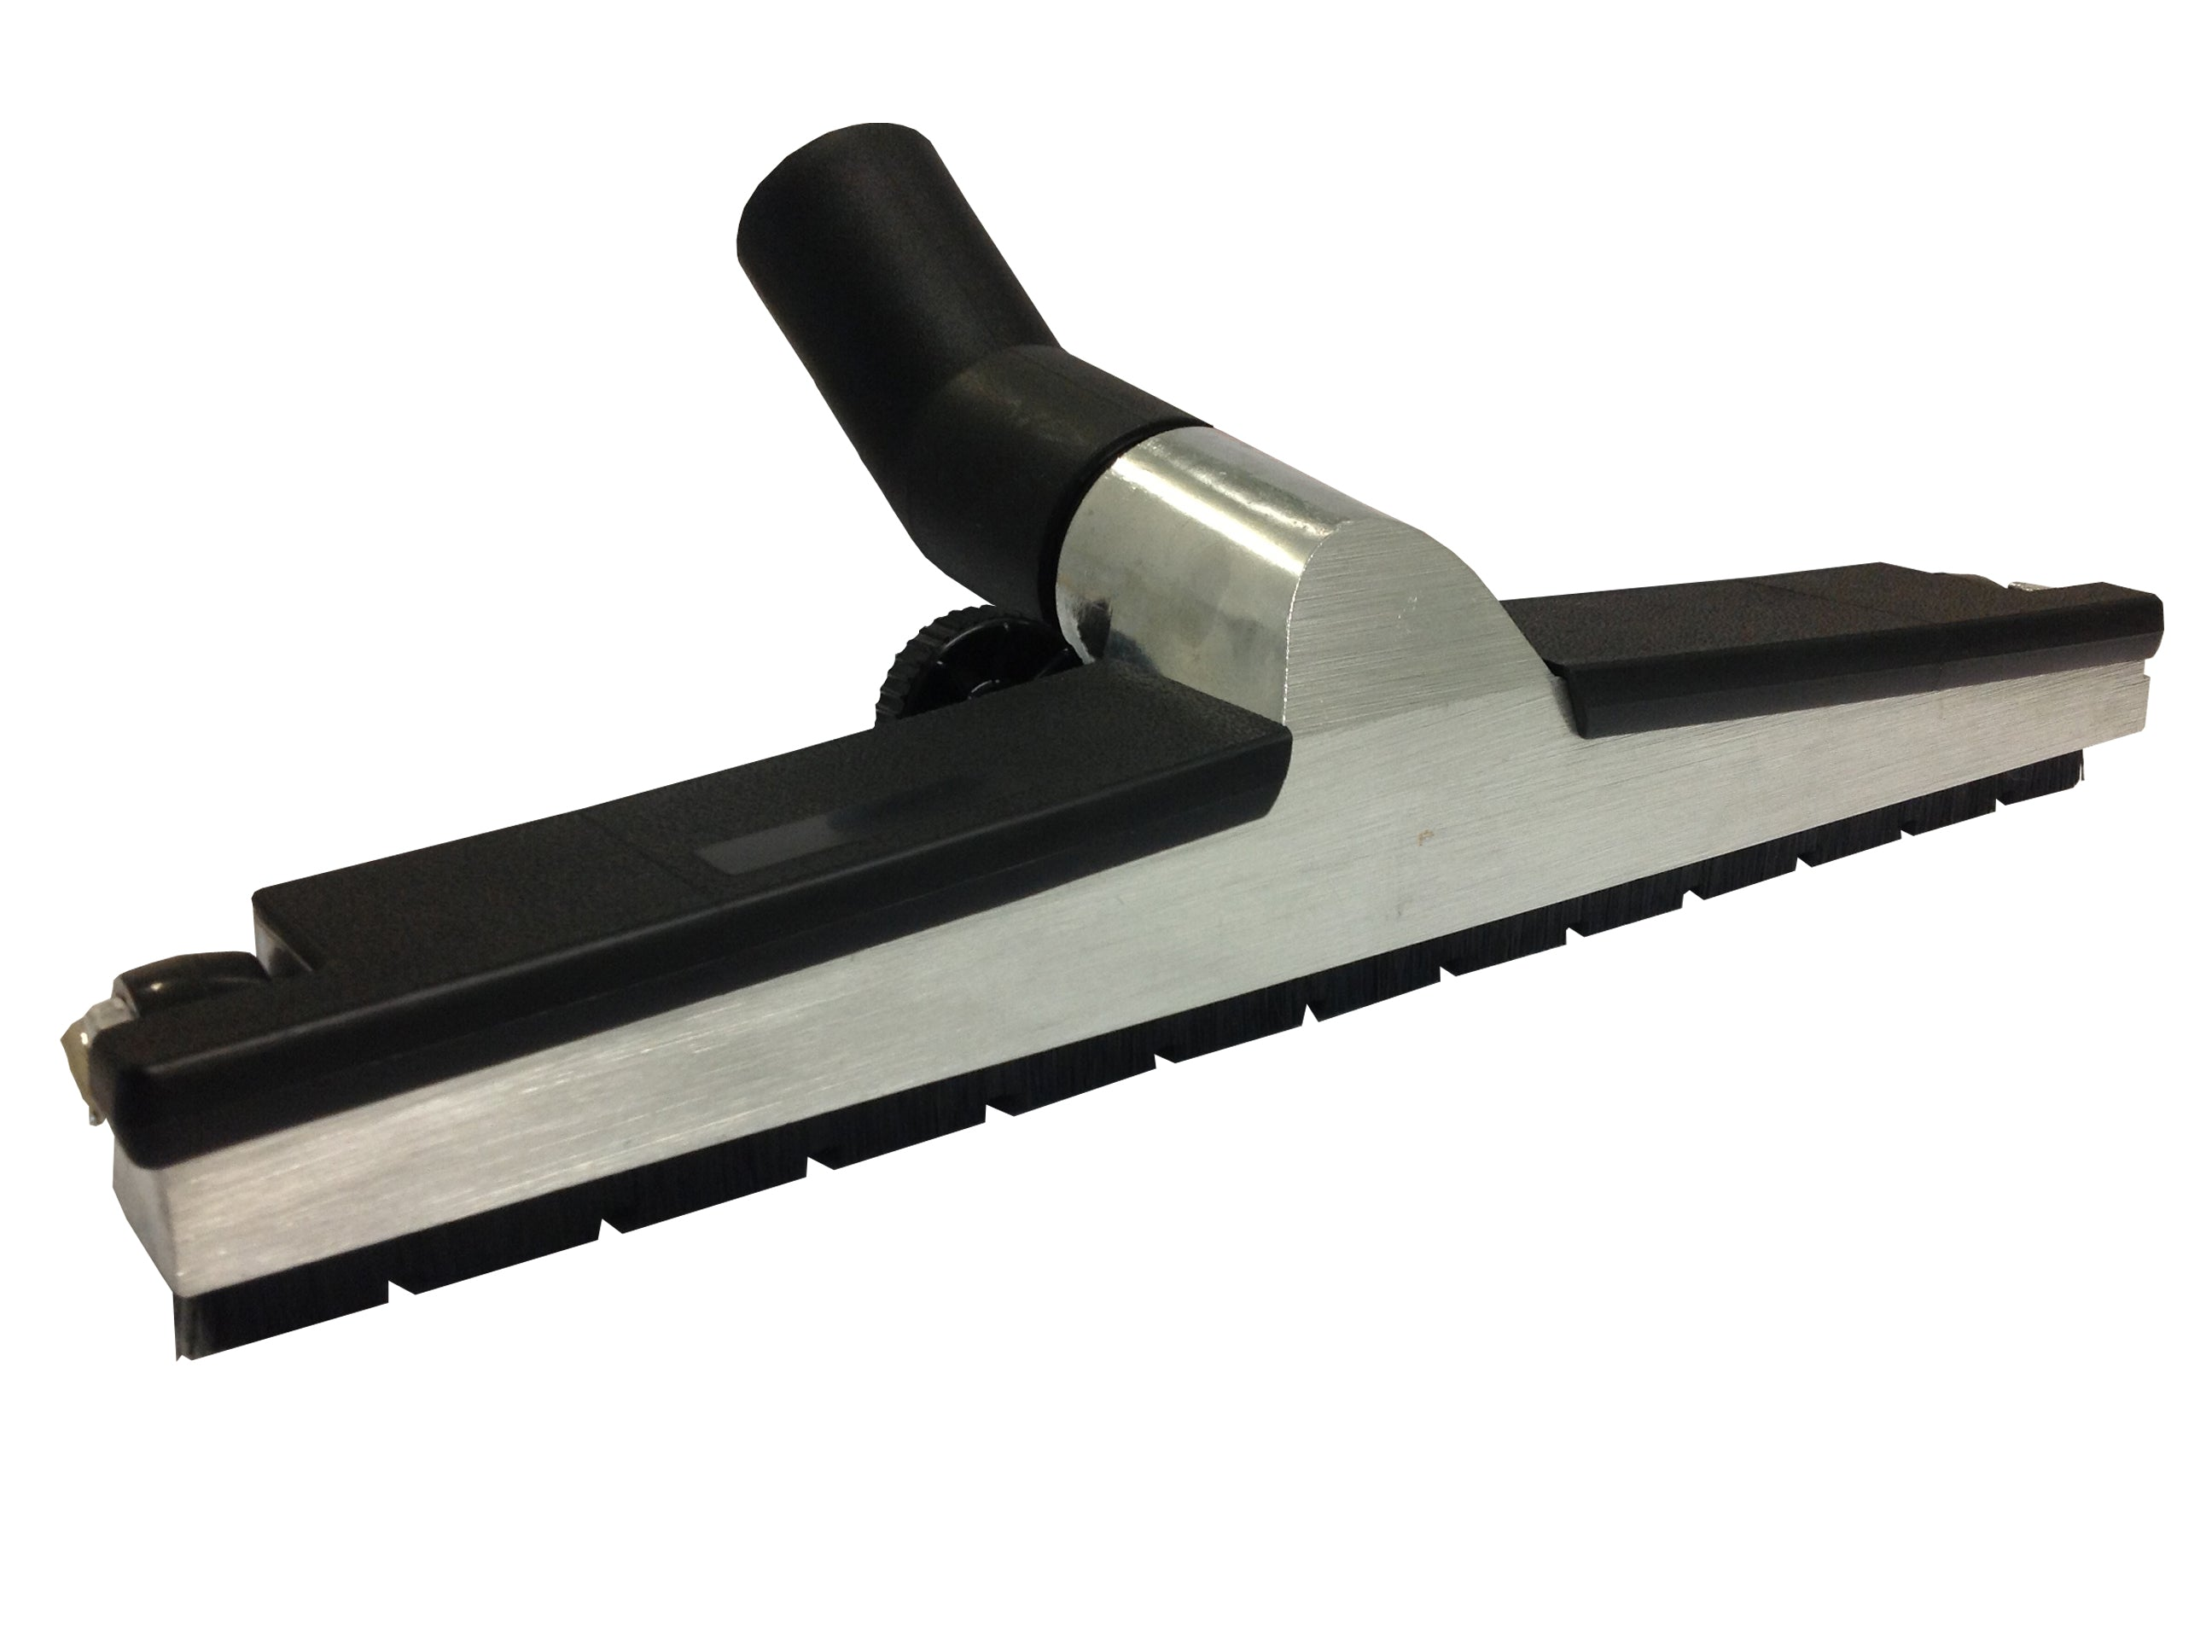 WESSEL WERK GRD450 BRUSH FLOOR TOOL 38MM X 450MM WIDE - ALUMINIUM/BLACK